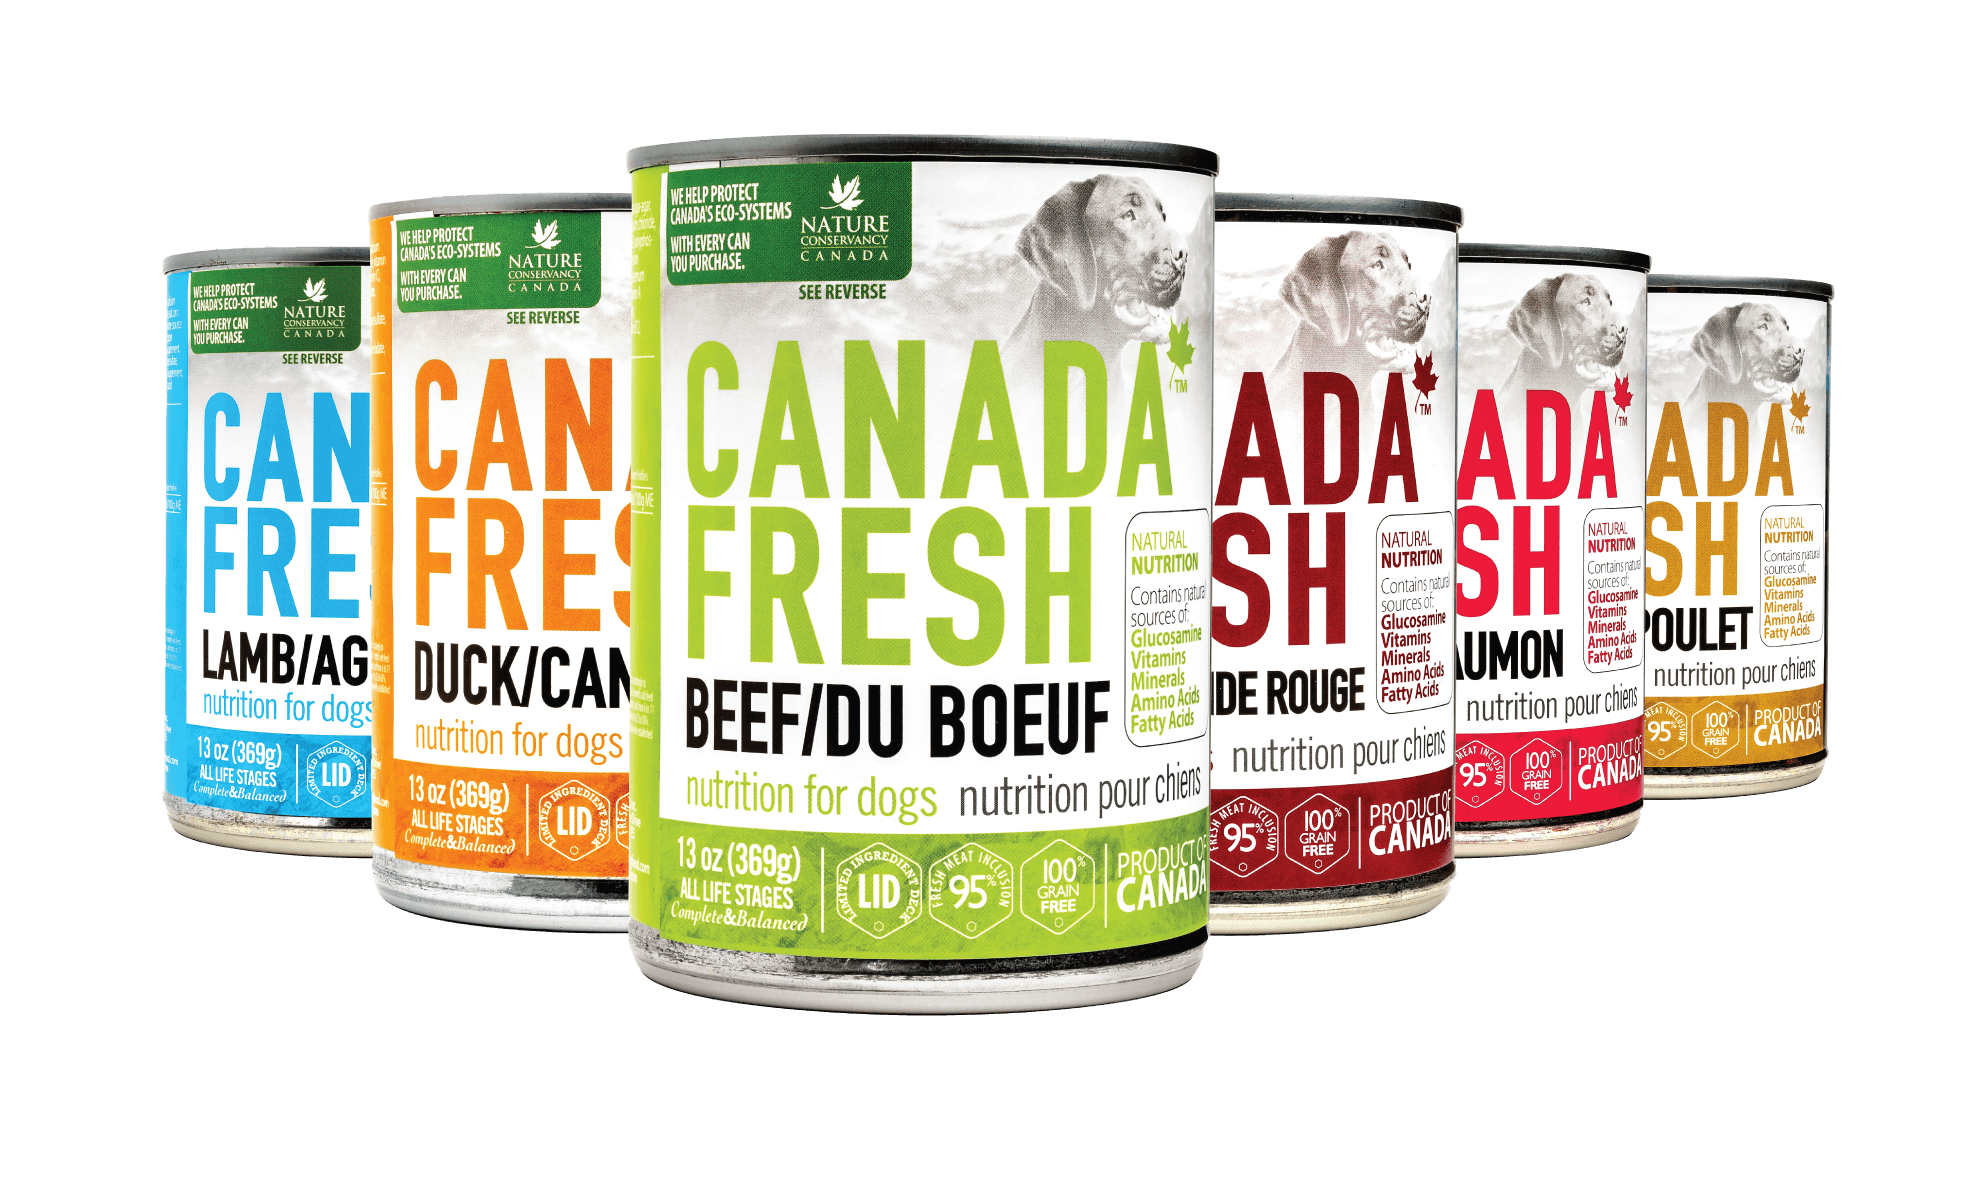 13 oz cans of all variants of the Canada Fresh dog range